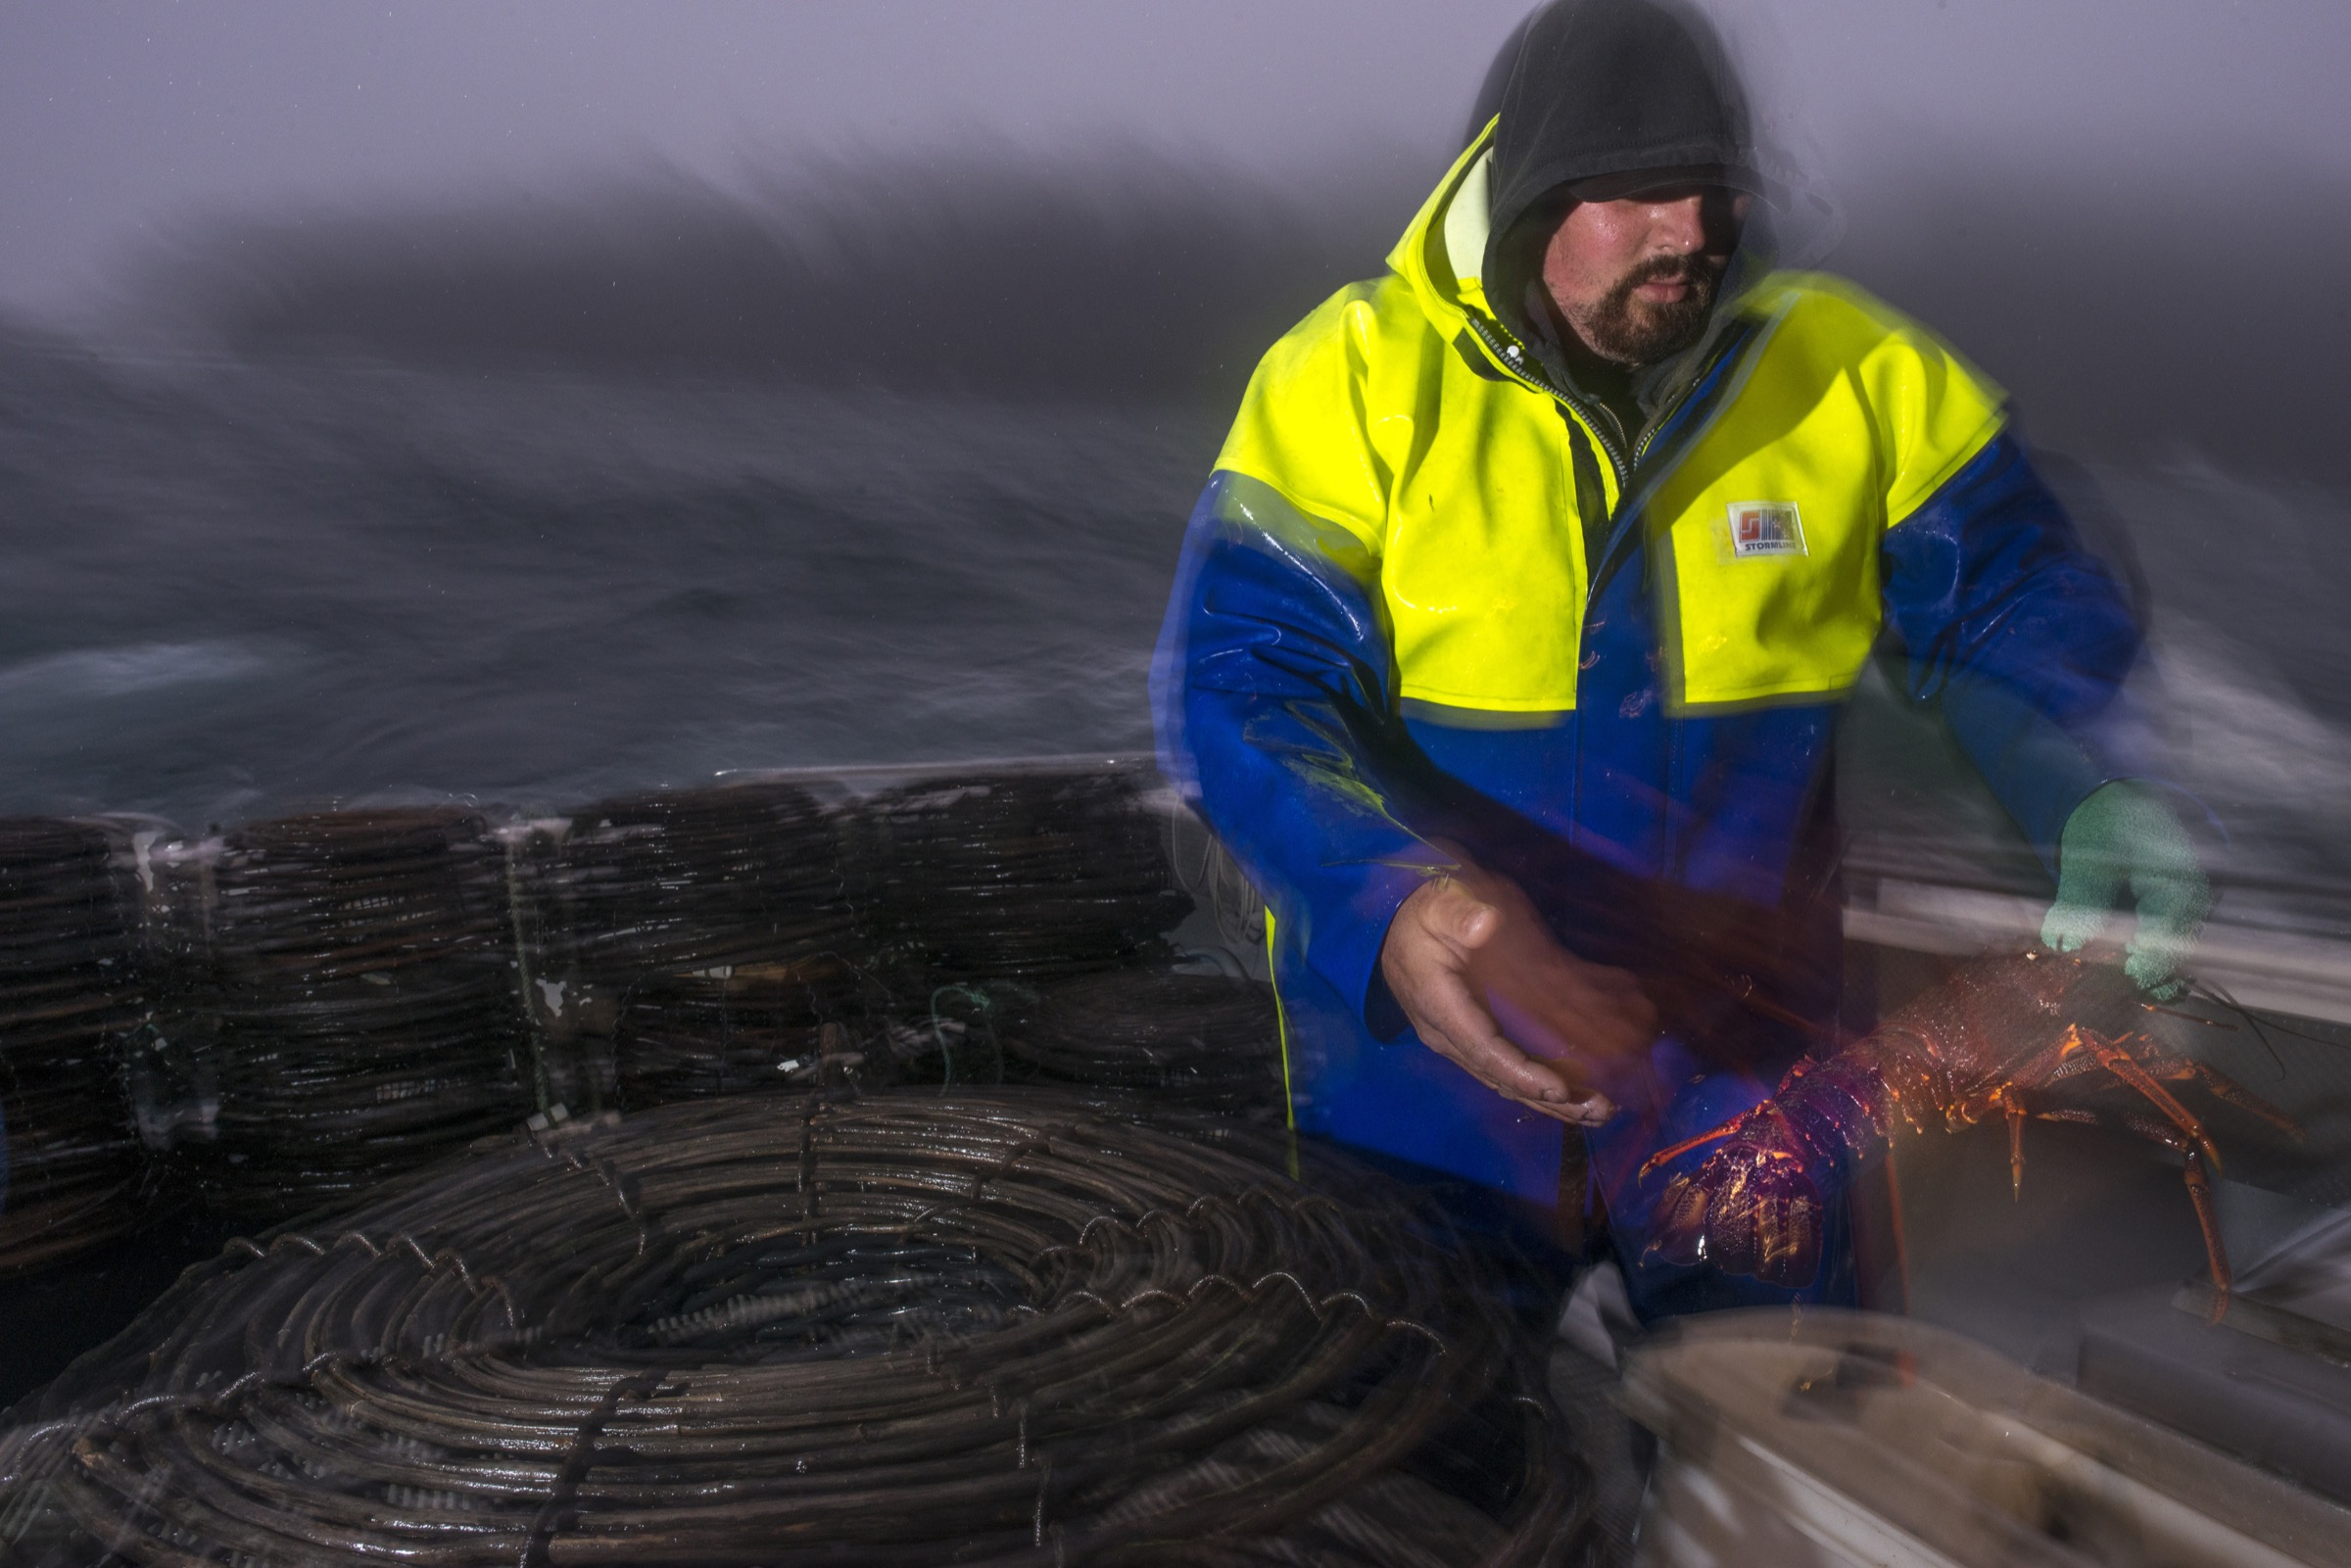 Shane Bloomfield tosses a southern rock lobster into a container on the deck of a commercial lobster fishing vessel off the Tasman Peninsula.